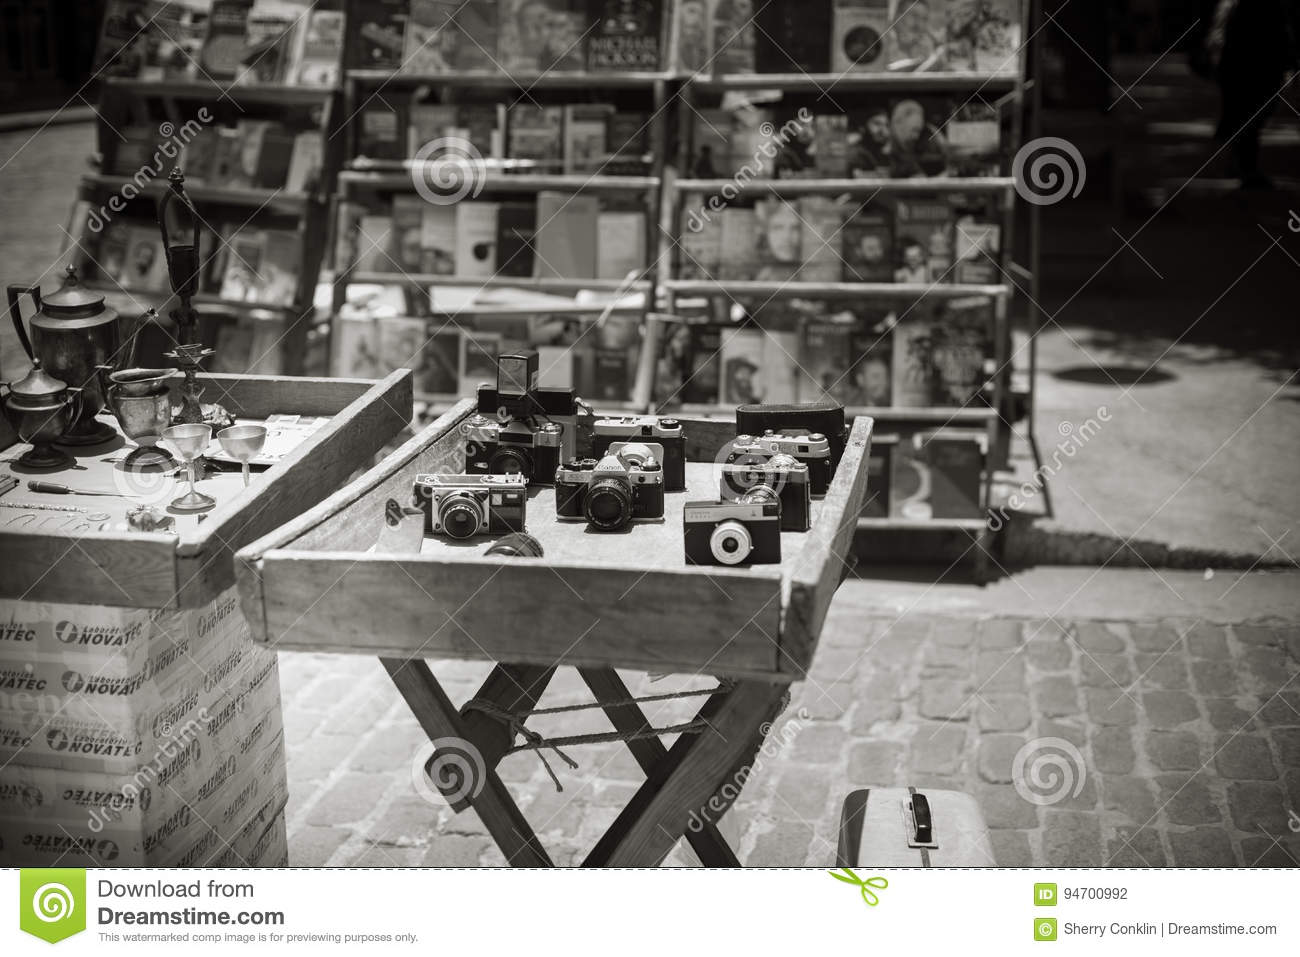 Black and white of antique used cameras on display at an outdoor